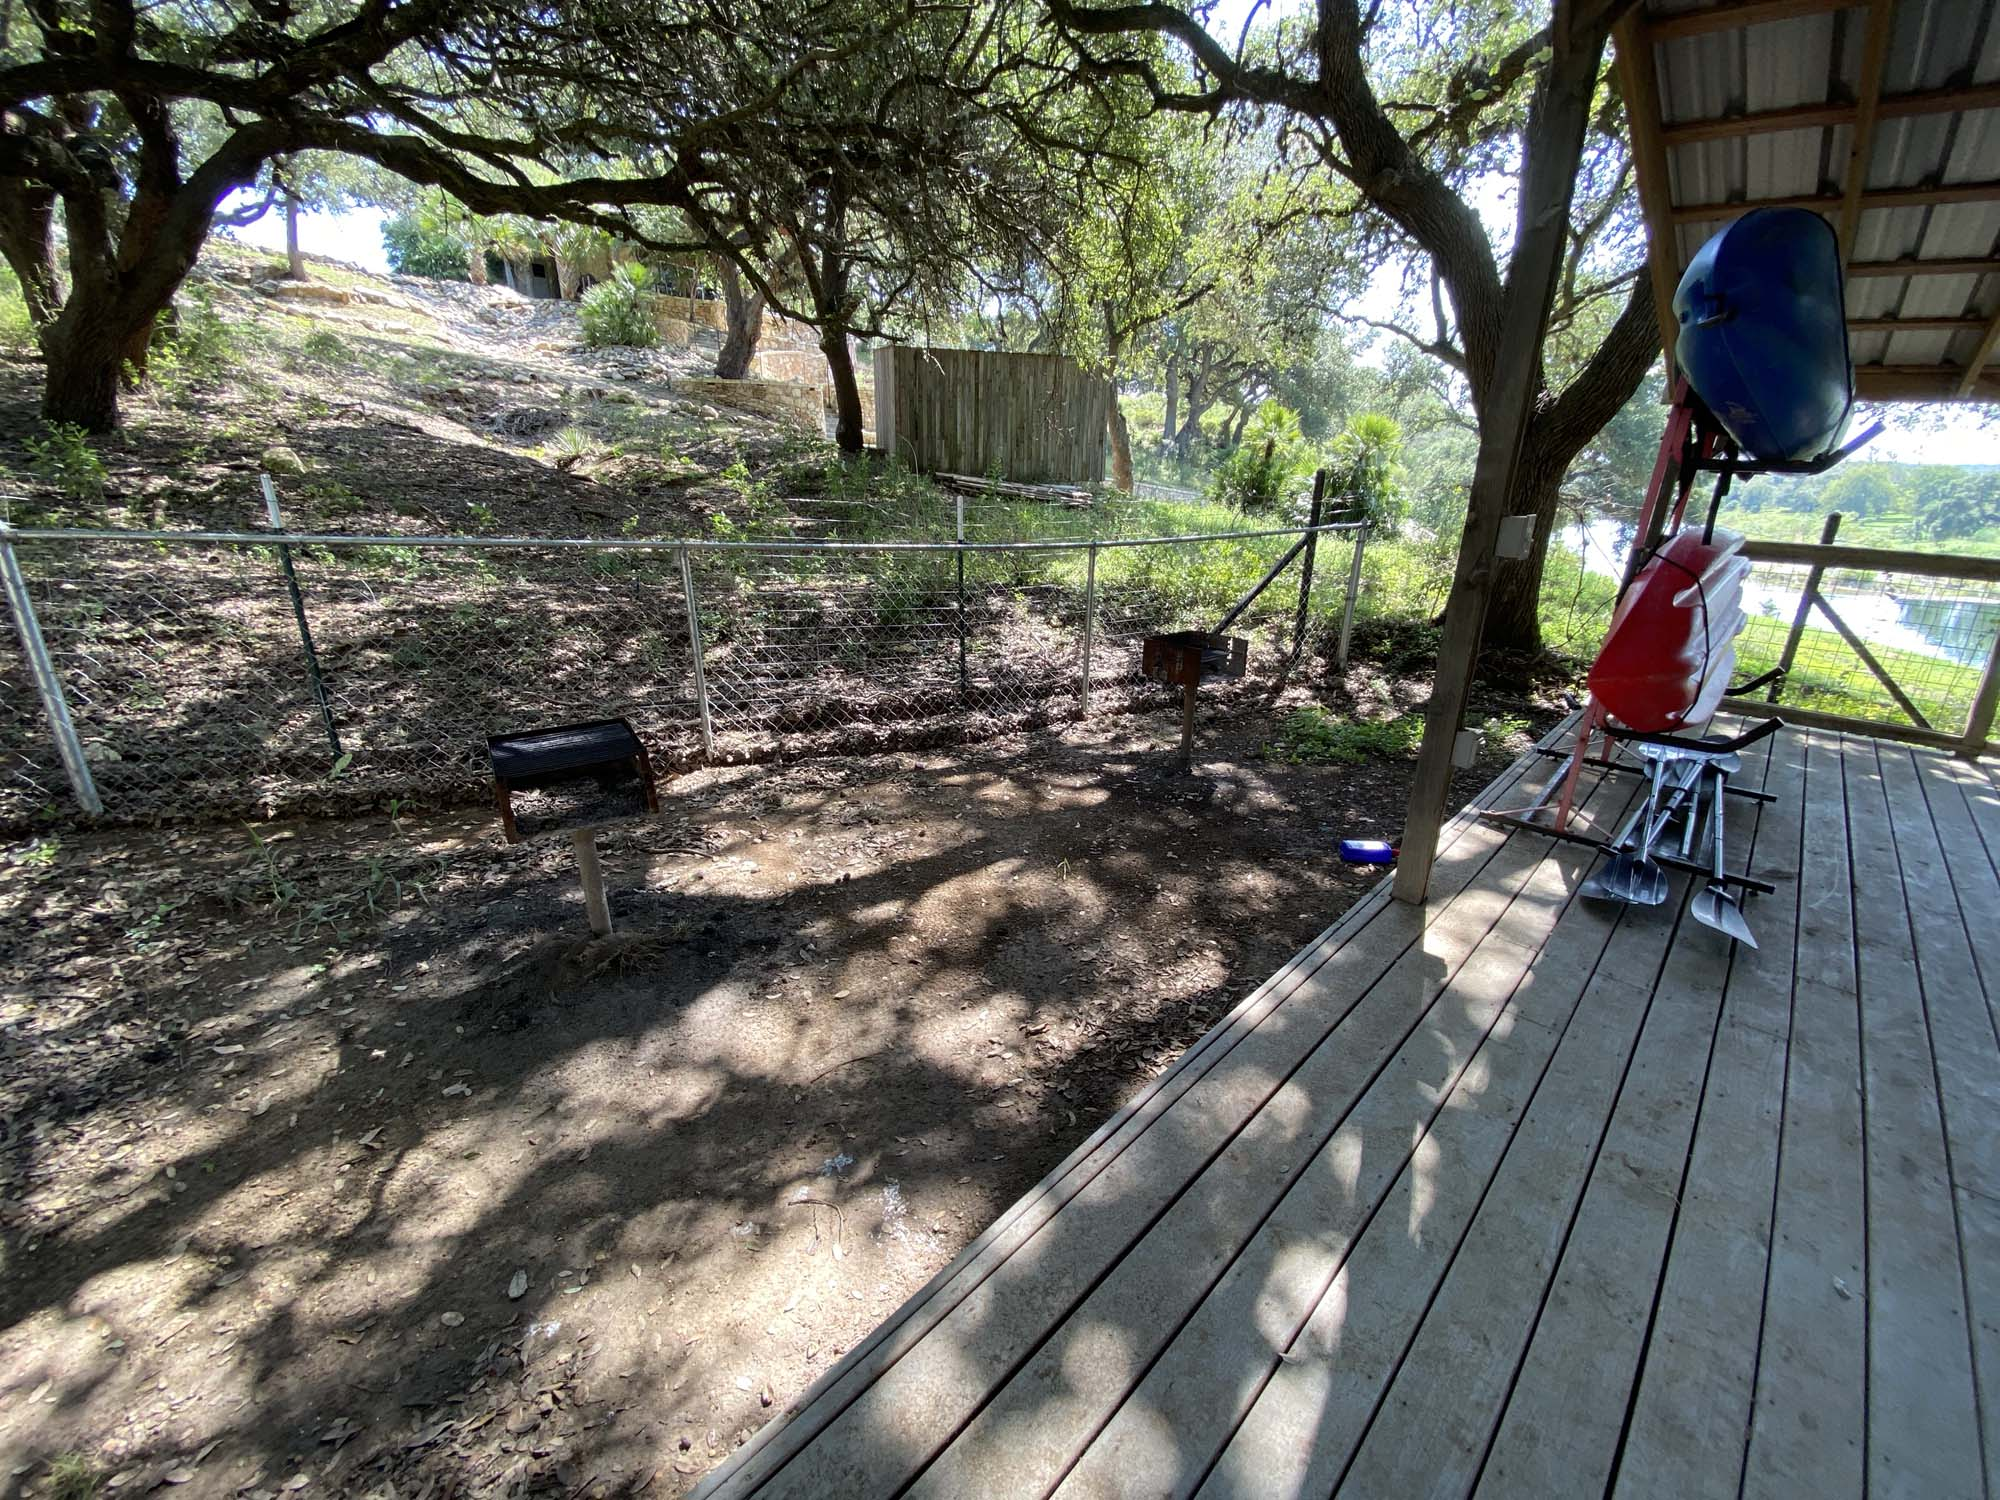 TWO DAM GUEST COTTAGES - Contact Hill Country Premier Lodging at 512-847-7460